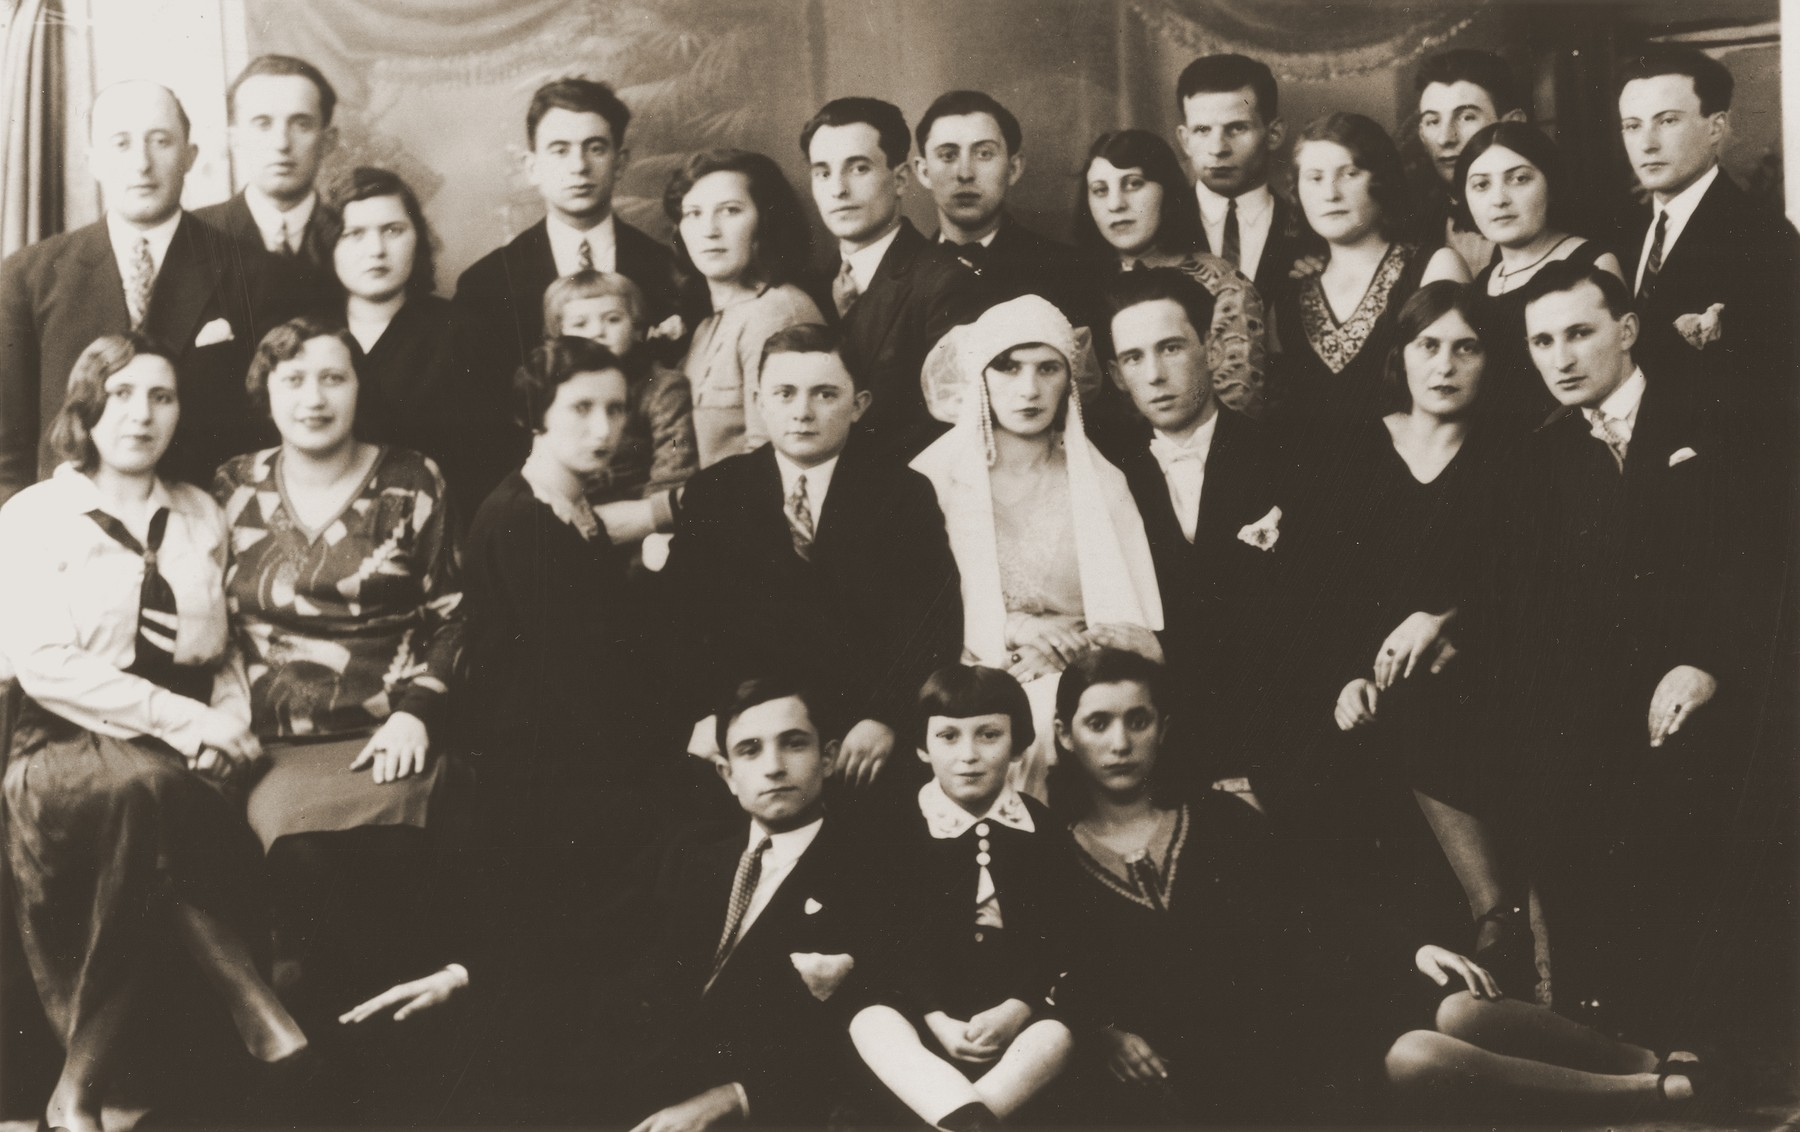 Group portrait of members of the extended Broda family at the Dresner wedding in Zawiercie.  Among those pictured are:  Aron Broda, Moishe and Sheindel Broda, Nacha Broda, Izak and Tola Goldblum, and Anschel Dresner.